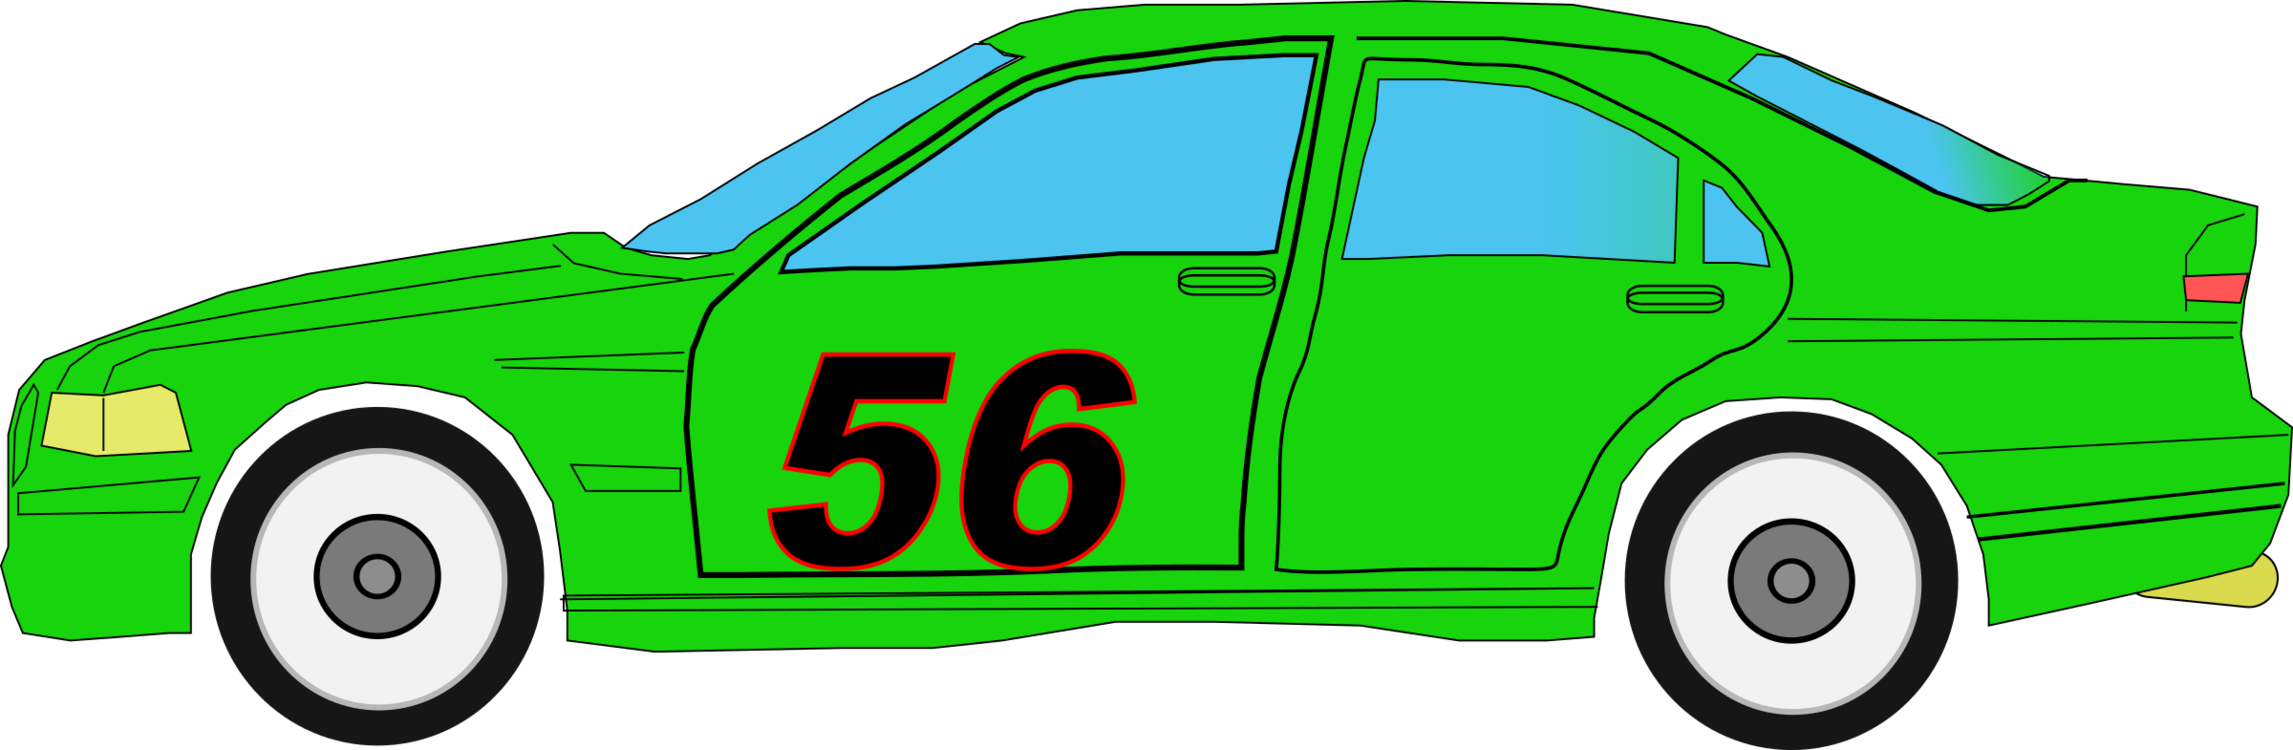 Green clipart race car. Vehicle auto racing free